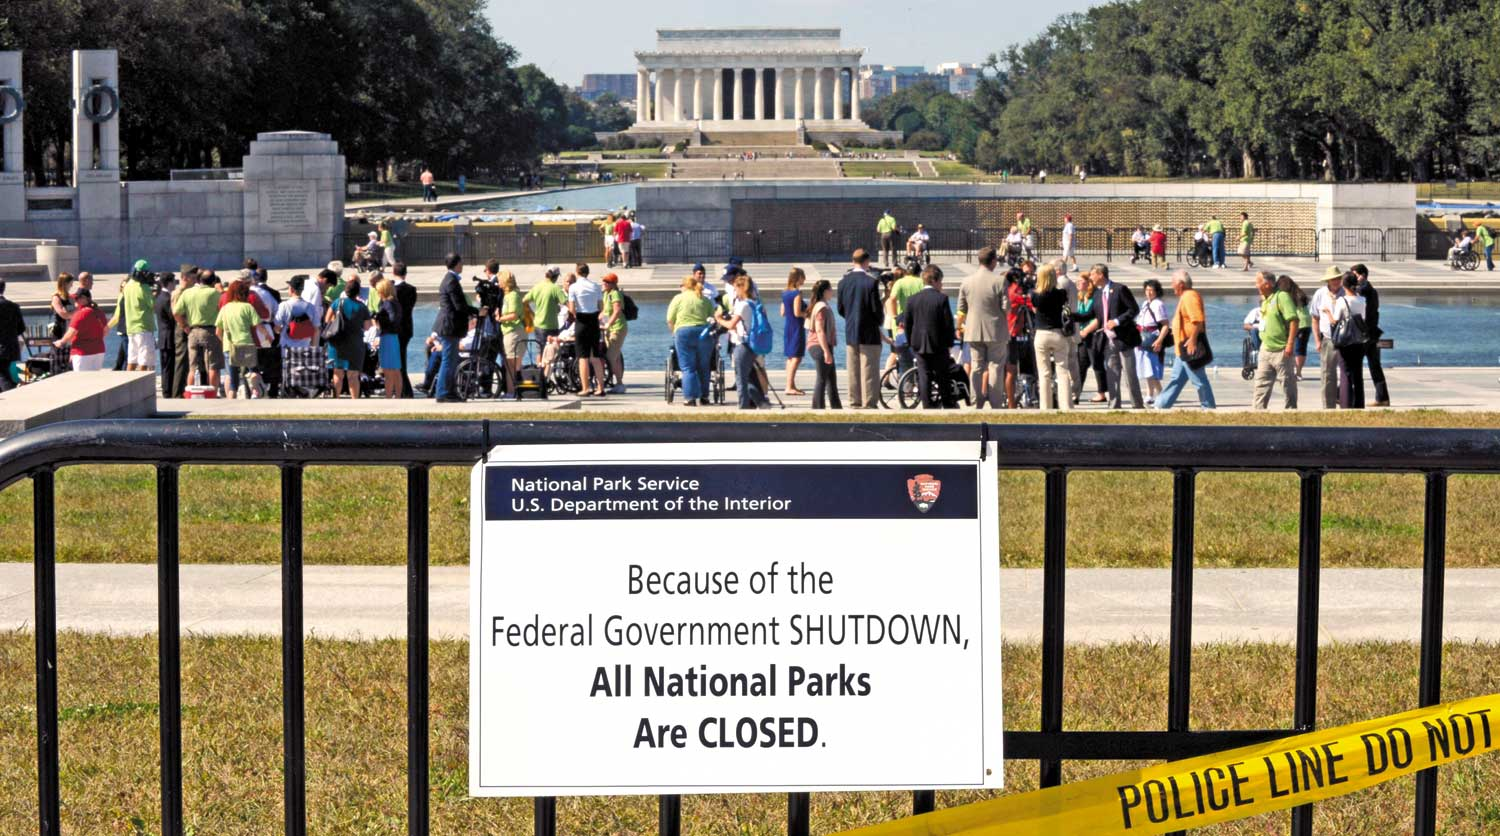 The-World-War-II-Memorial-on-the-National-Mall-October-2-2013-in-Washington-DC